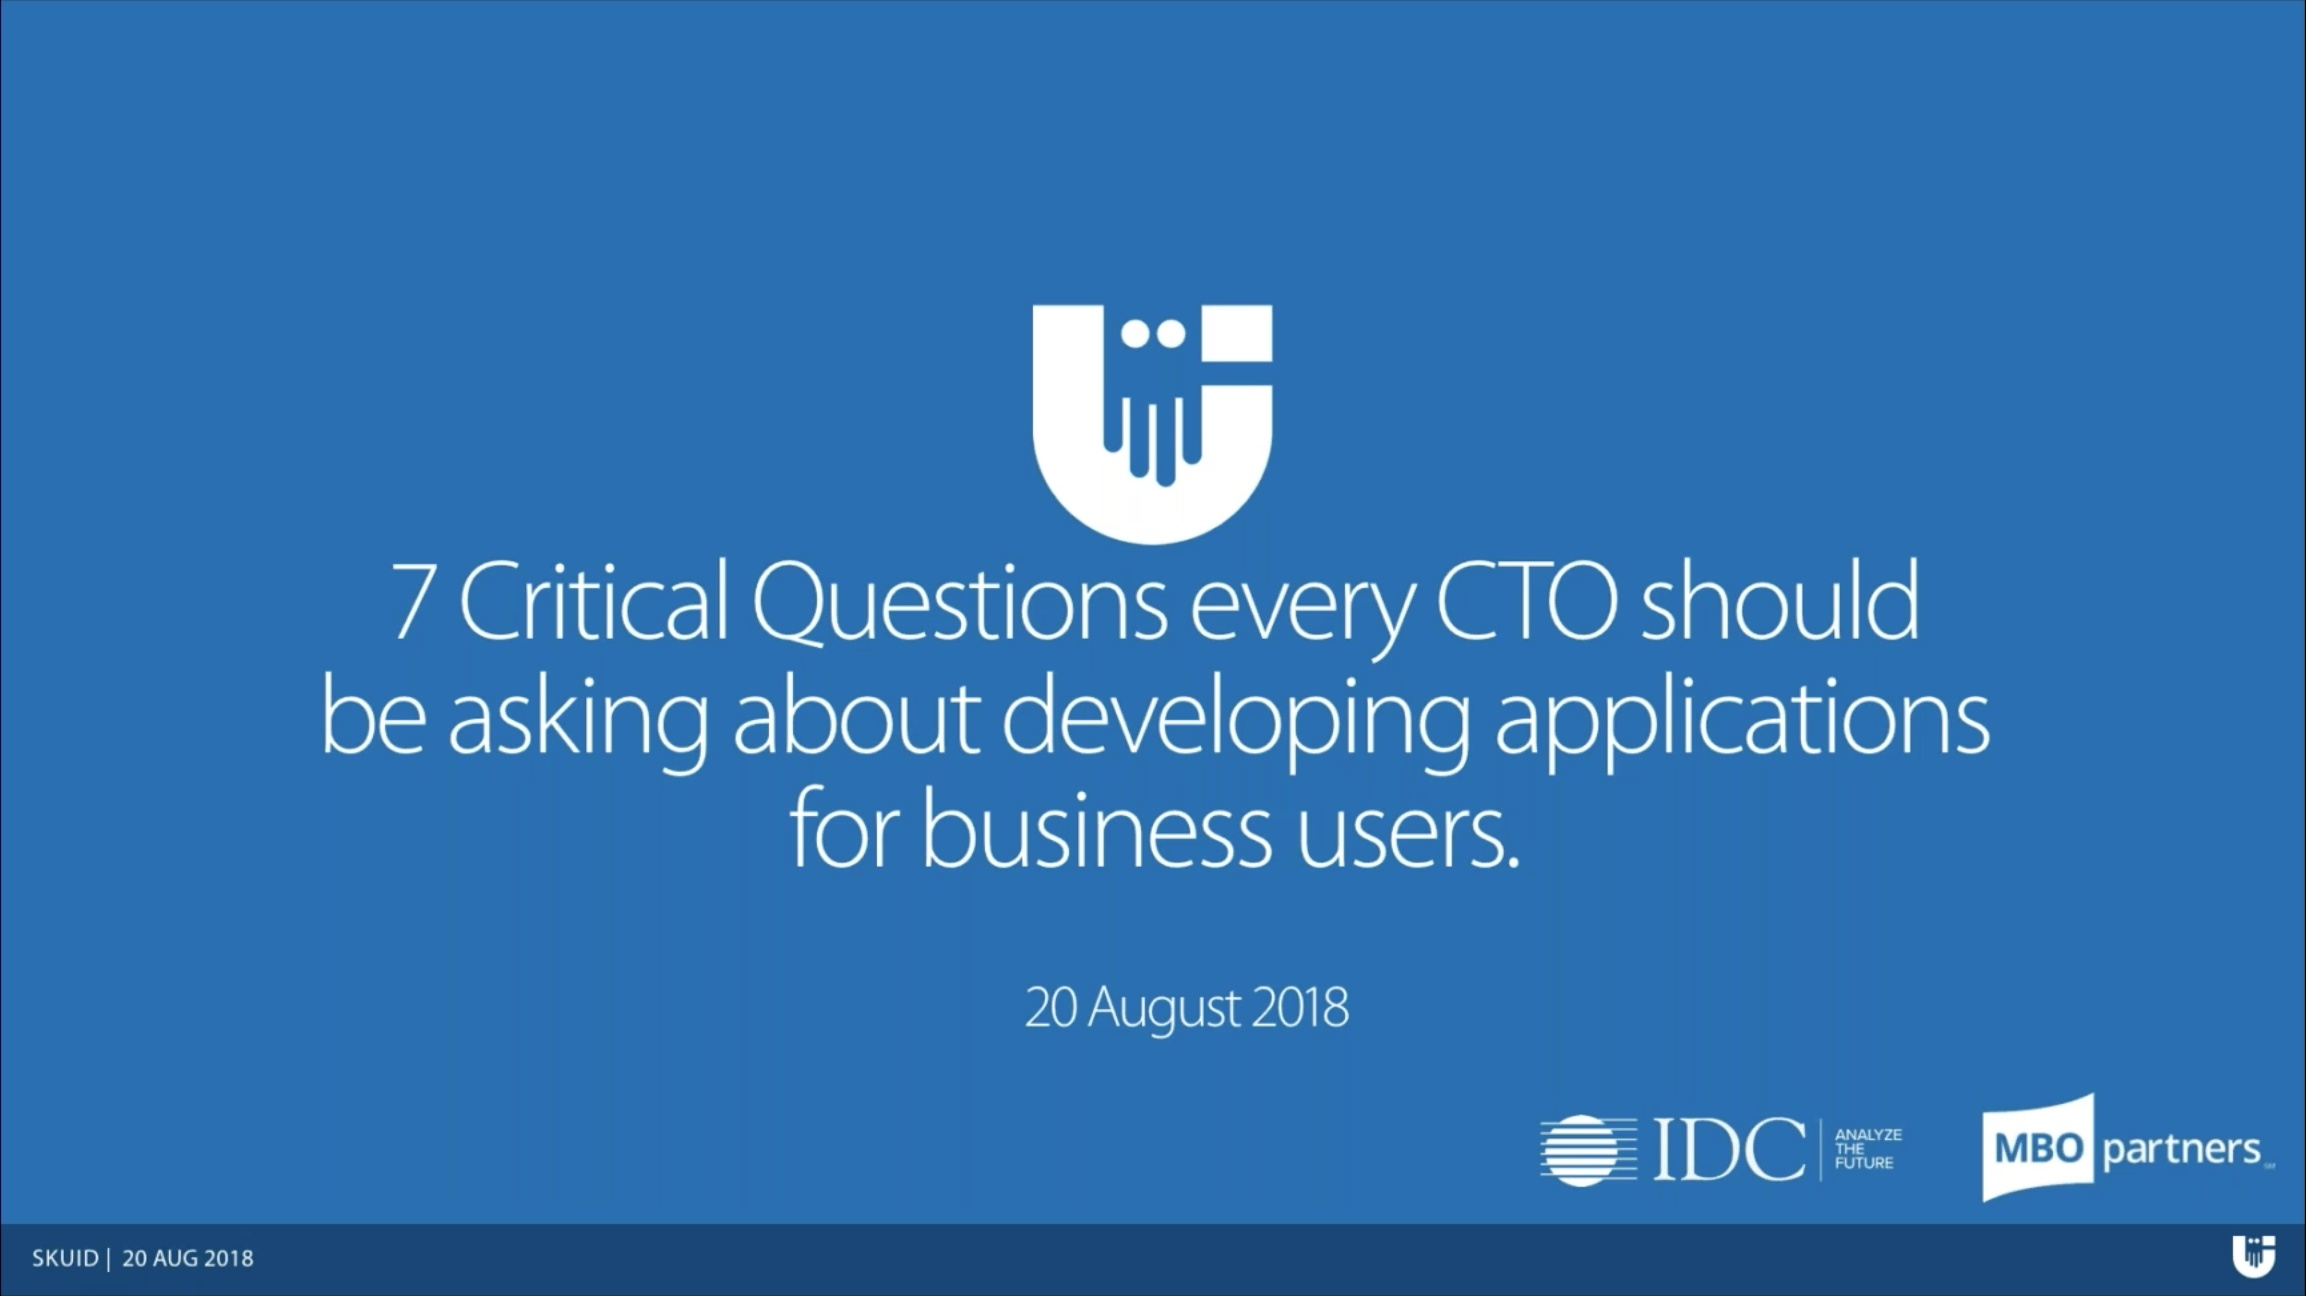 7 questions every CTO should be asking about developing applications for business users